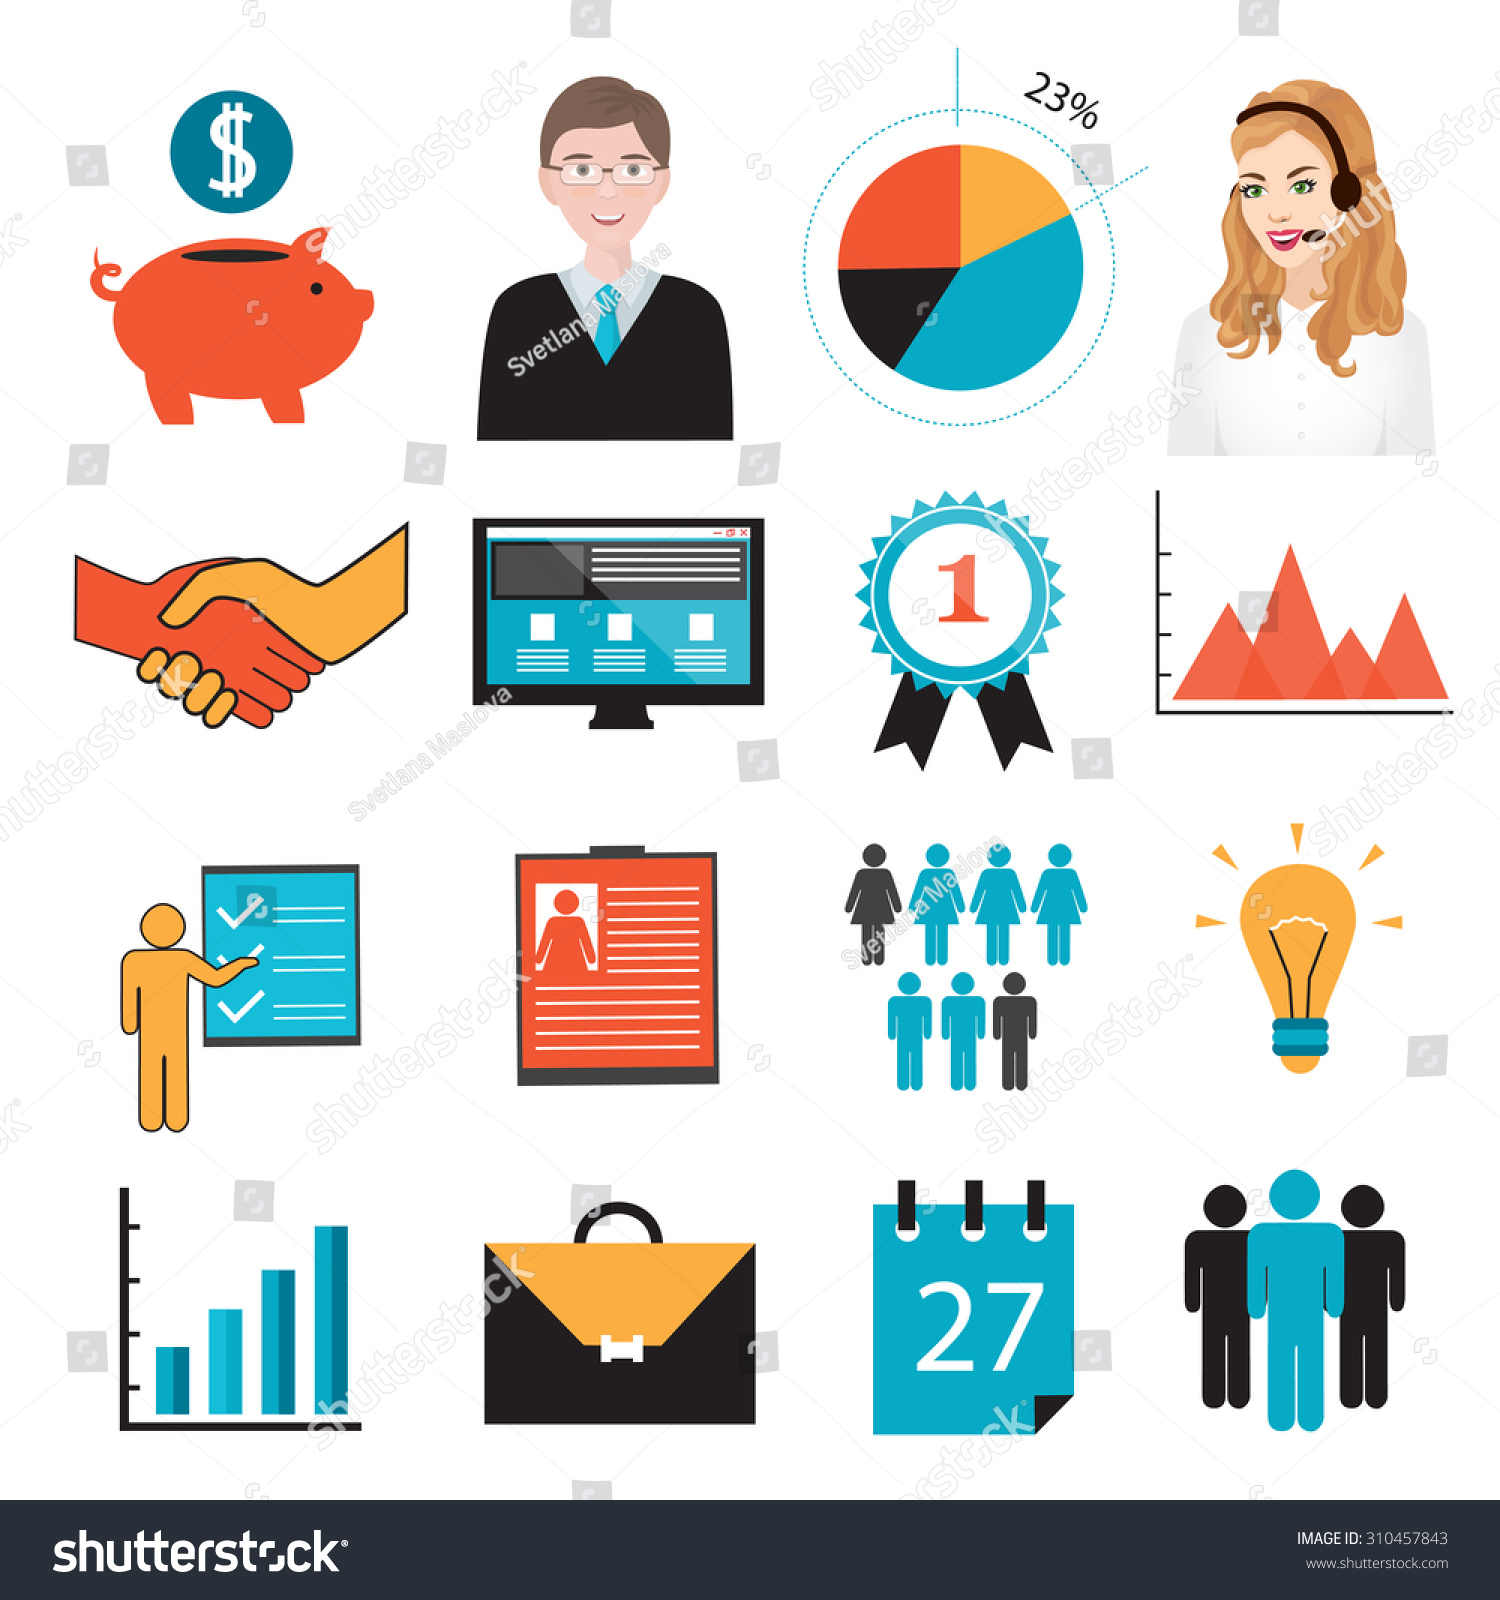 Business Symbols Icons Piggy Bank Resume Stock Vector (Royalty Free ...